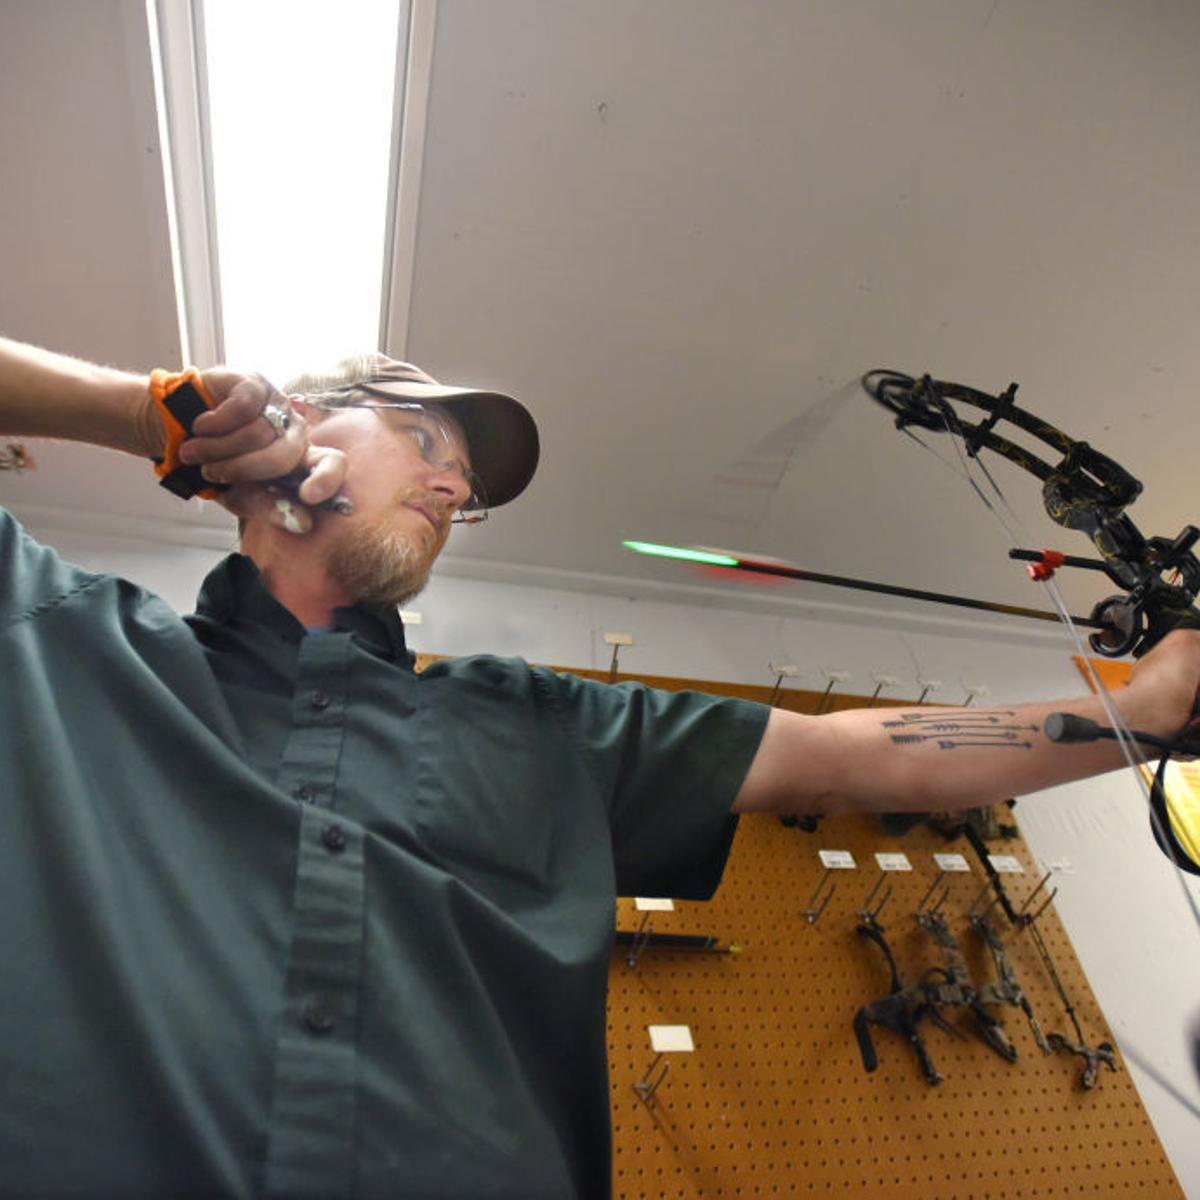 Drawing a line: Technology roils the air around archery